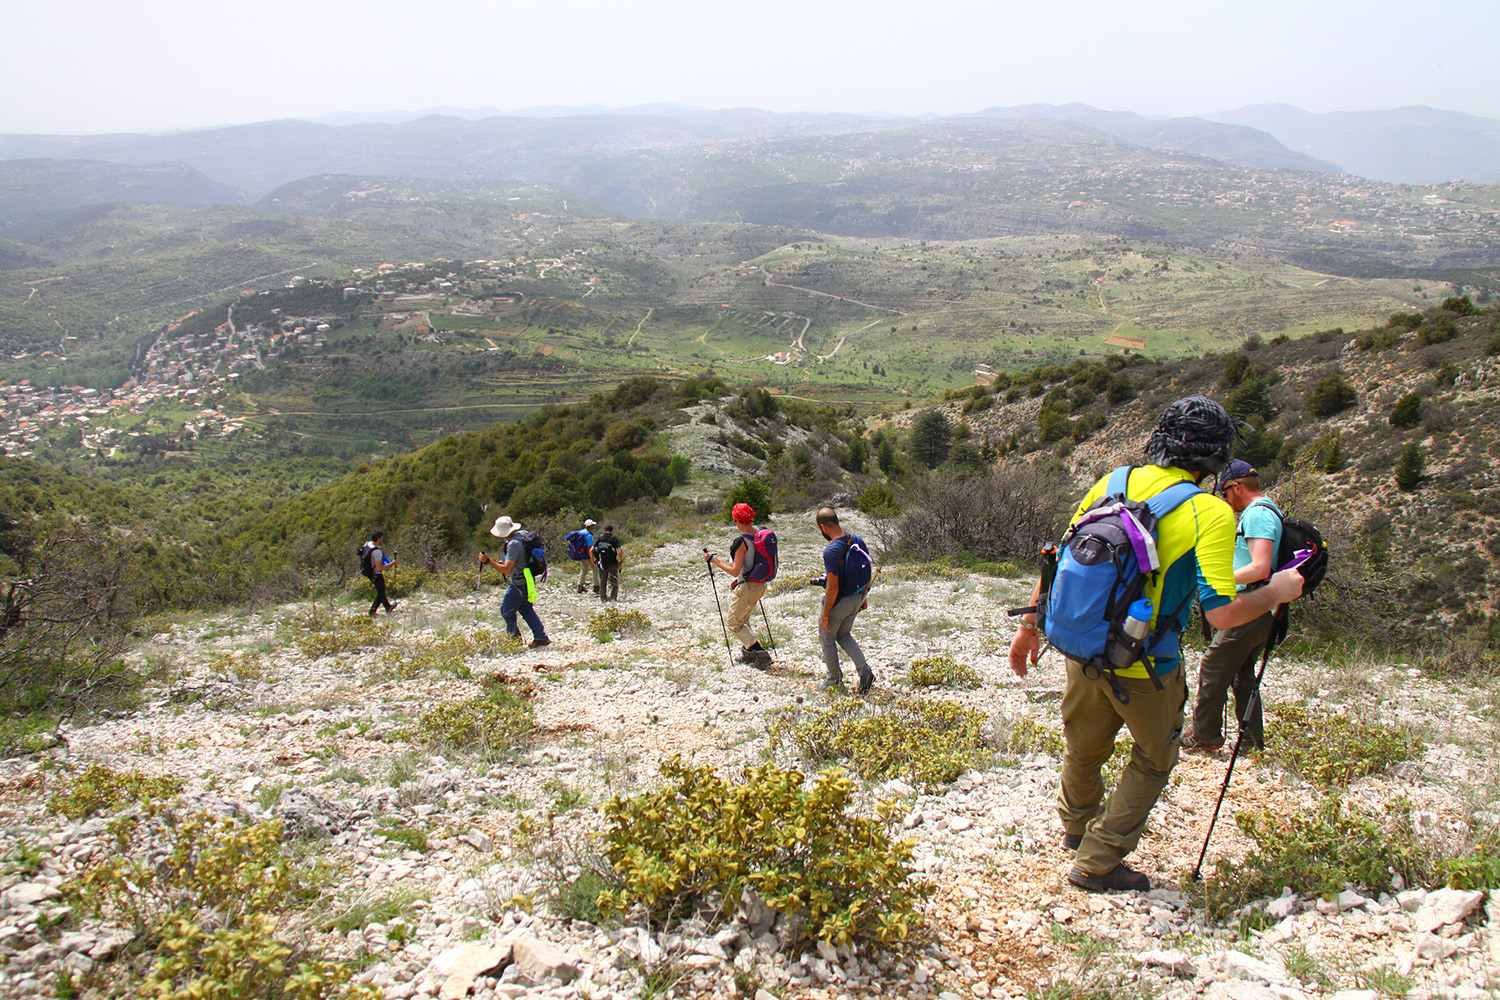 """Baskinta """"You can take the boy out of the village, but you can't take the village out of the boy."""" Joseph Ghaleb Karam, founder of the Lebanon Mountain Trail and president of the American Friends of the Lebanon Mountain Trail"""